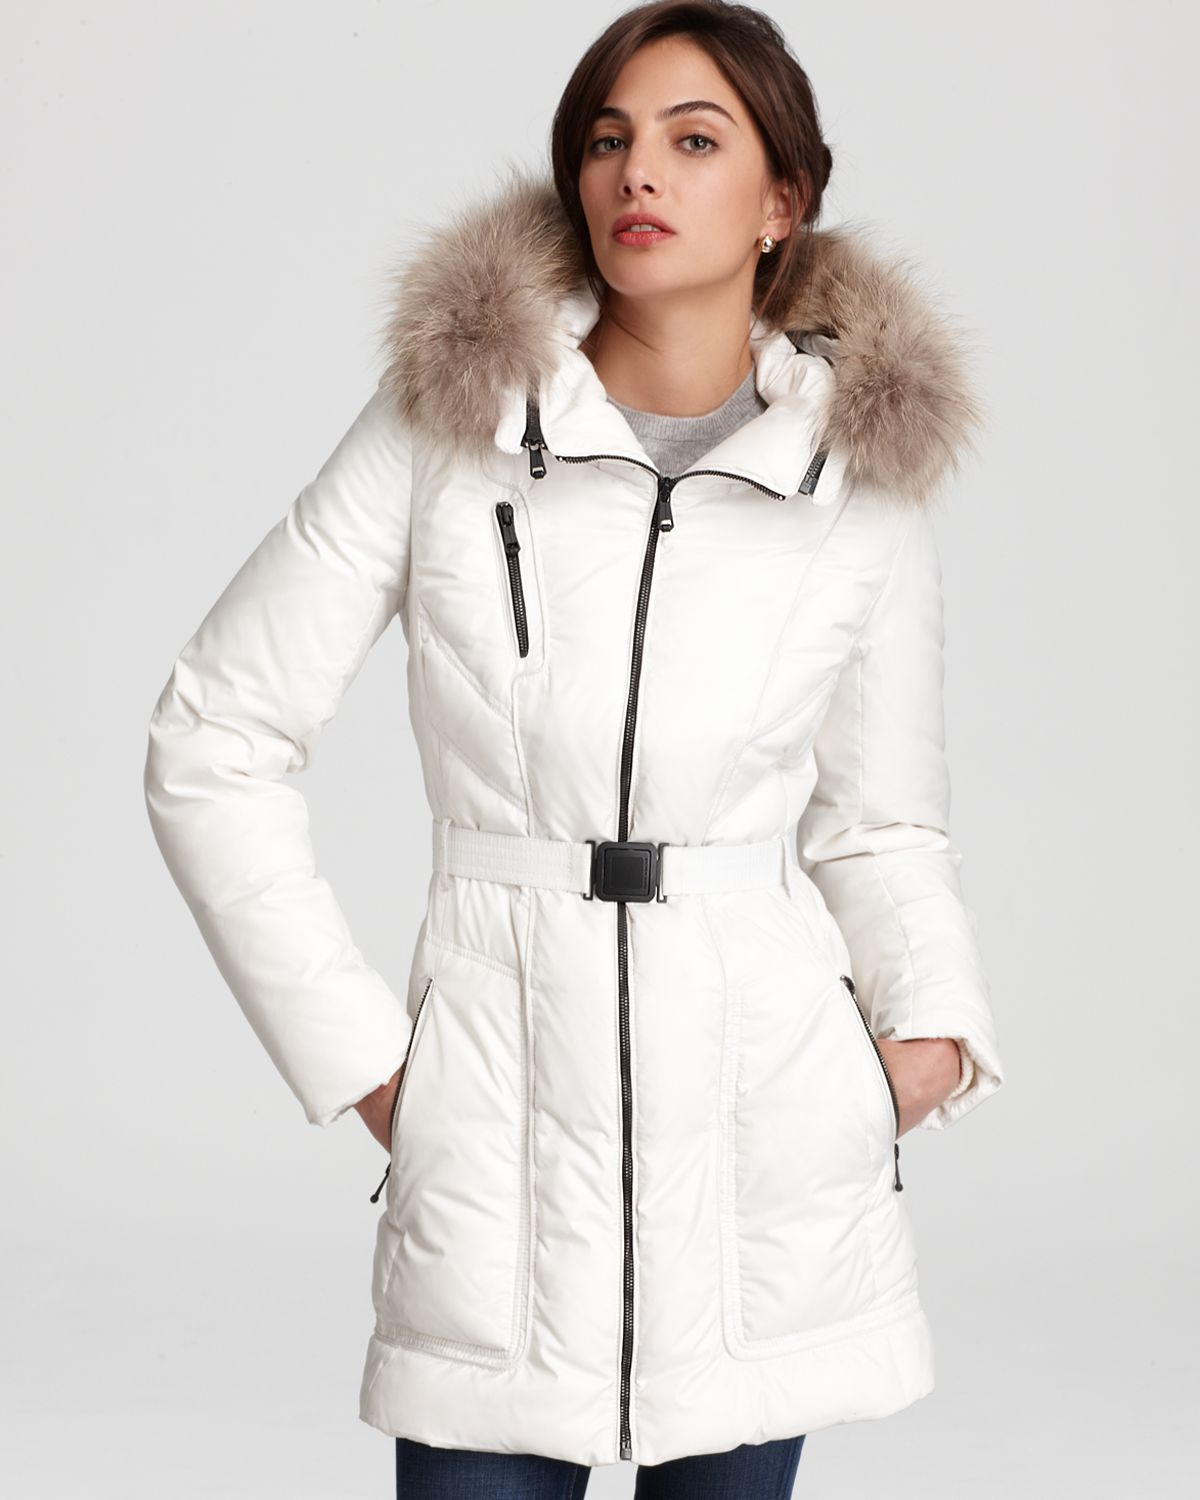 Andrew marc Down Jacket with Detachable Hood in White   Lyst